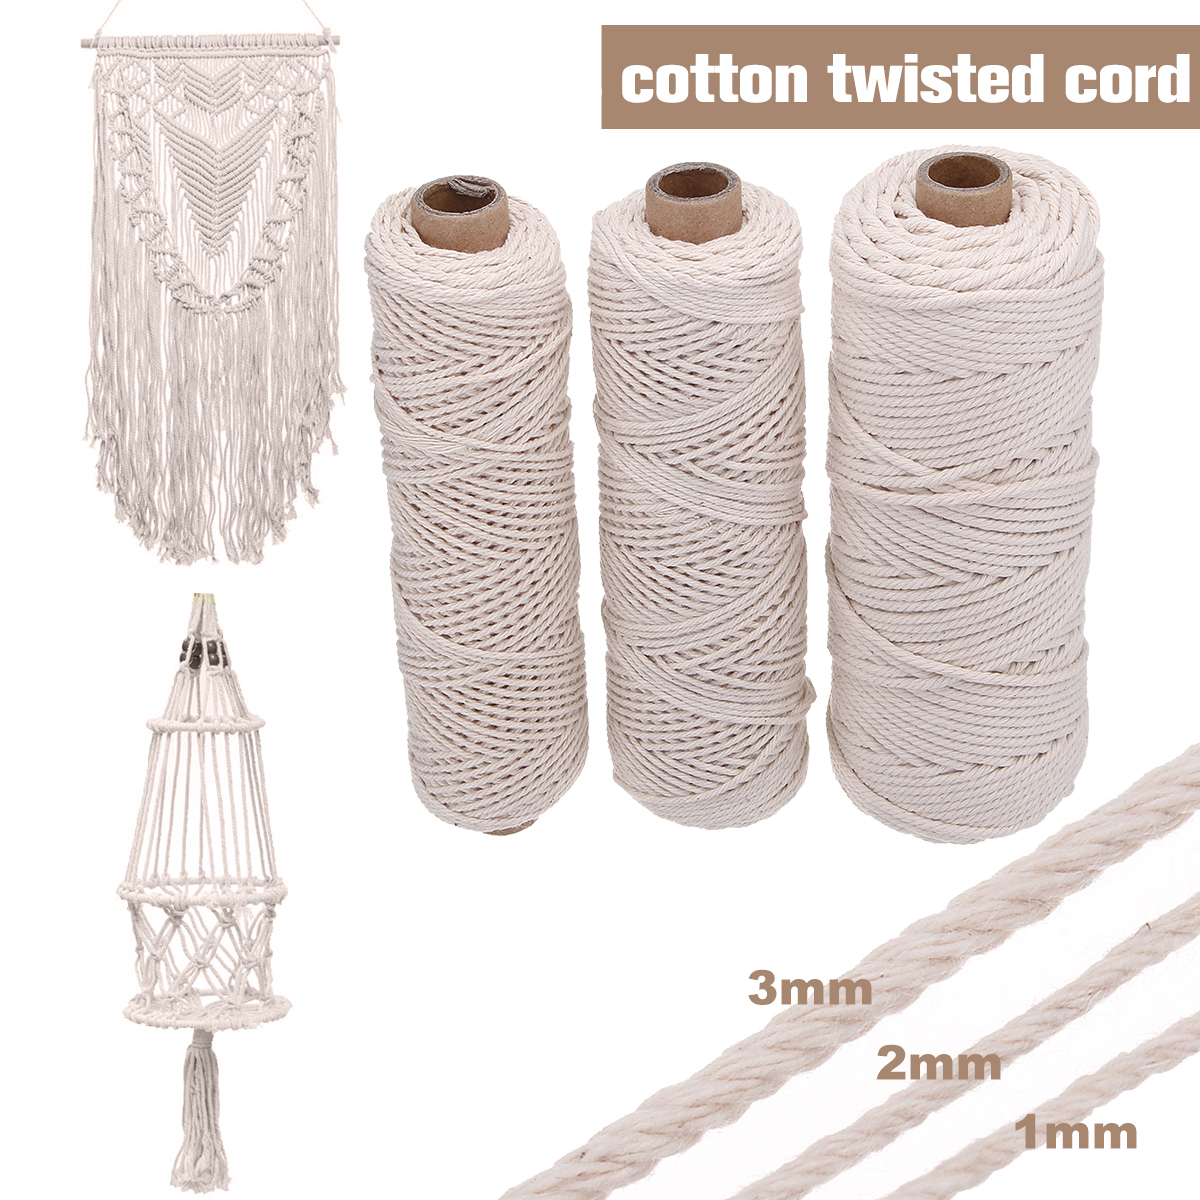 ALI shop ...  ... 32885065889 ... 1 ... 3 Size 1/2/3mm Braided Soft Beige Twisted Cotton Rope Cord Craft Macrame String DIY Handmade Tying Thread Macrame Cord Rope ...